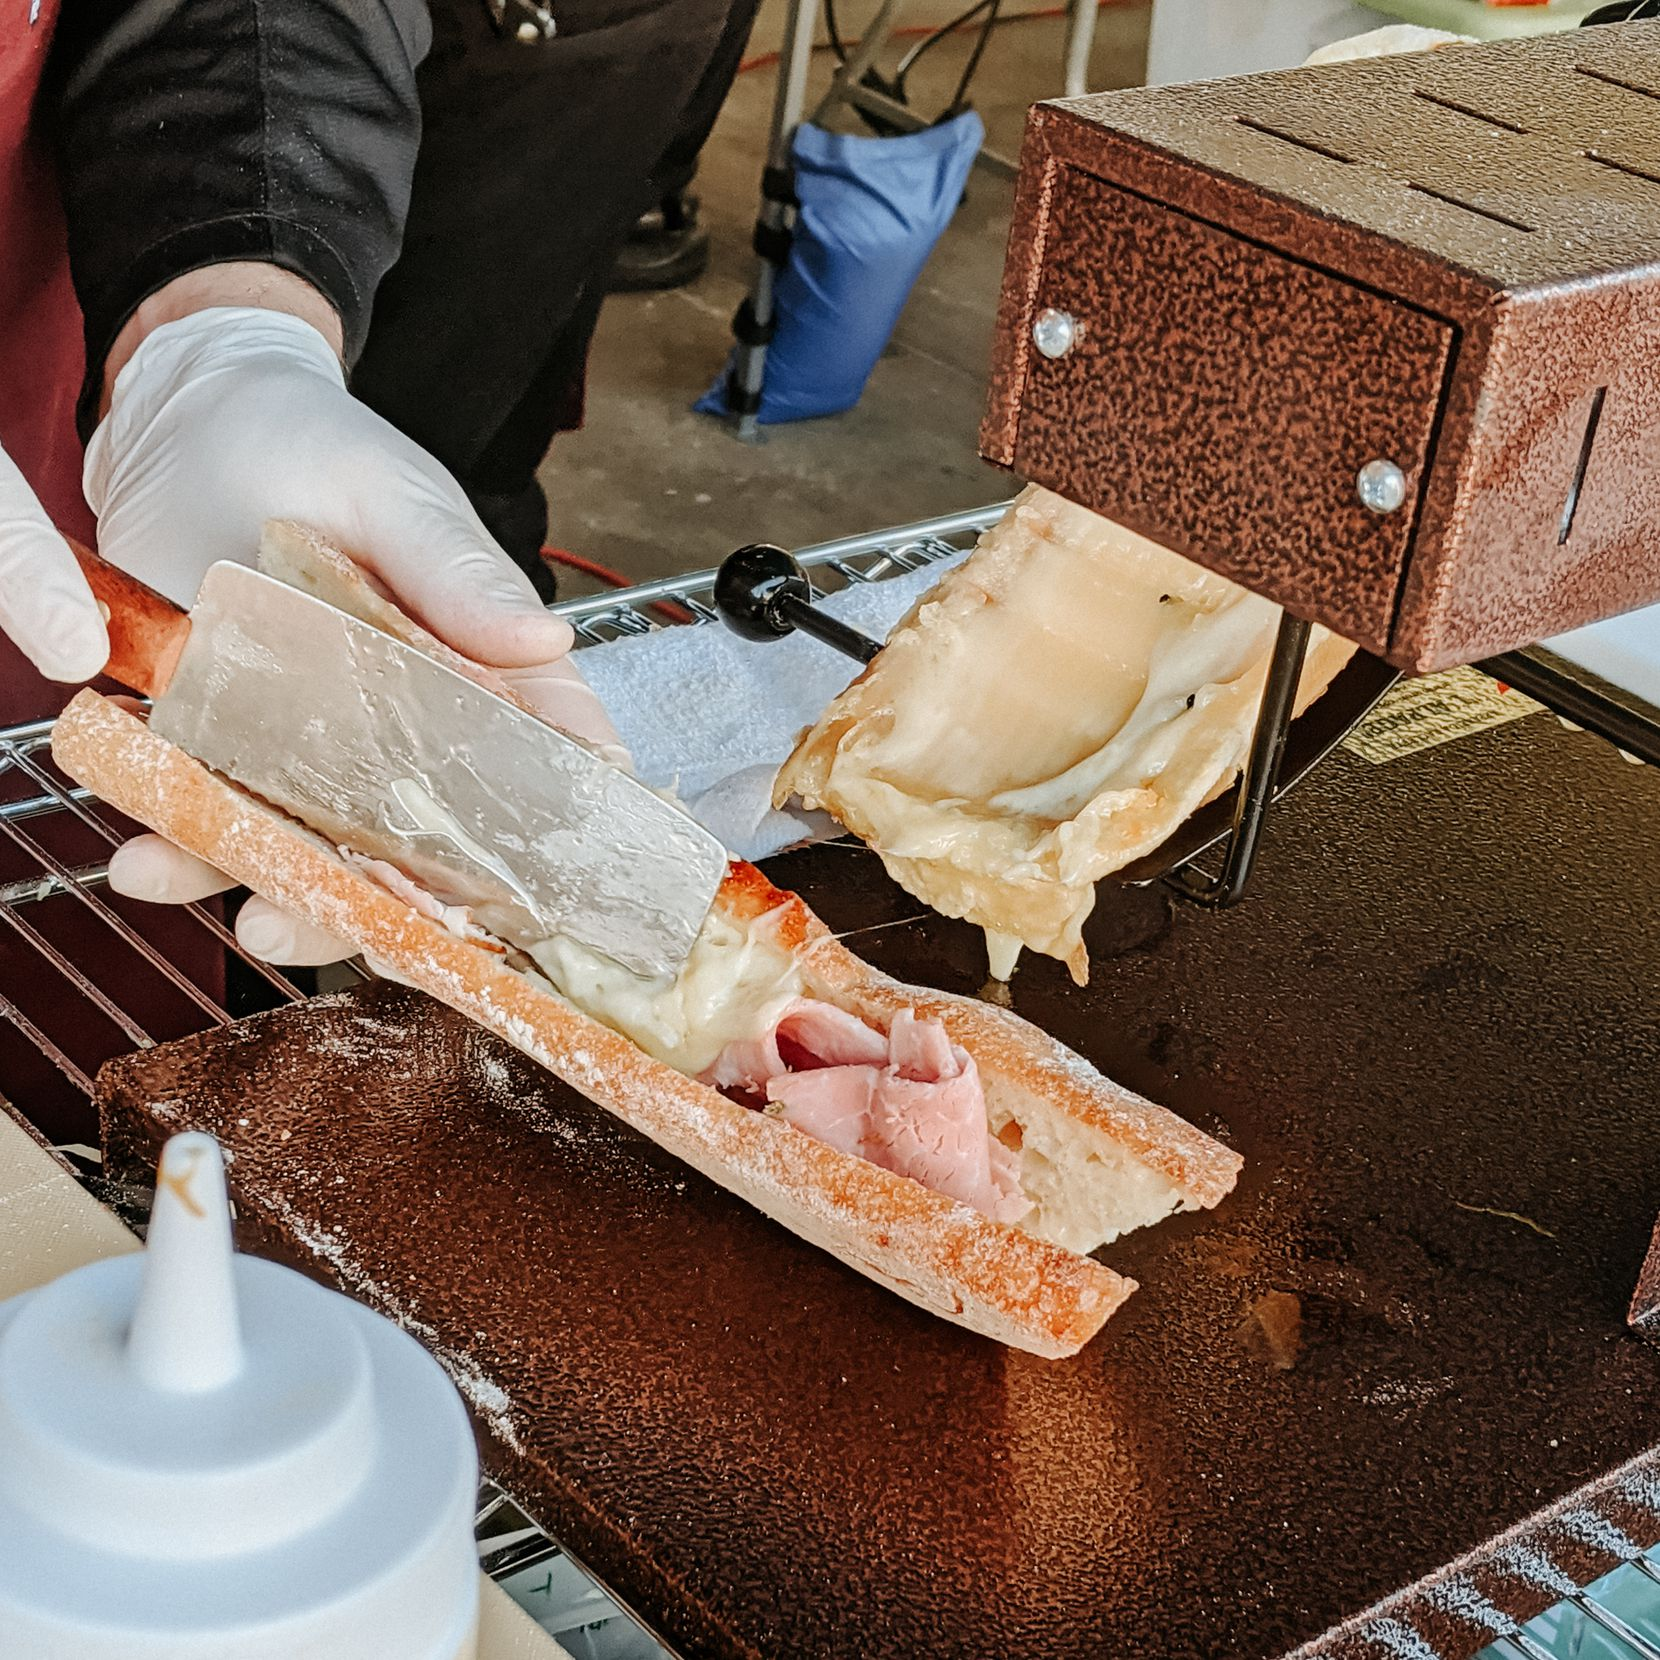 Rich Rogers of Scardello Artisan Cheese makes raclette sandwiches at the Dallas Farmers Market.